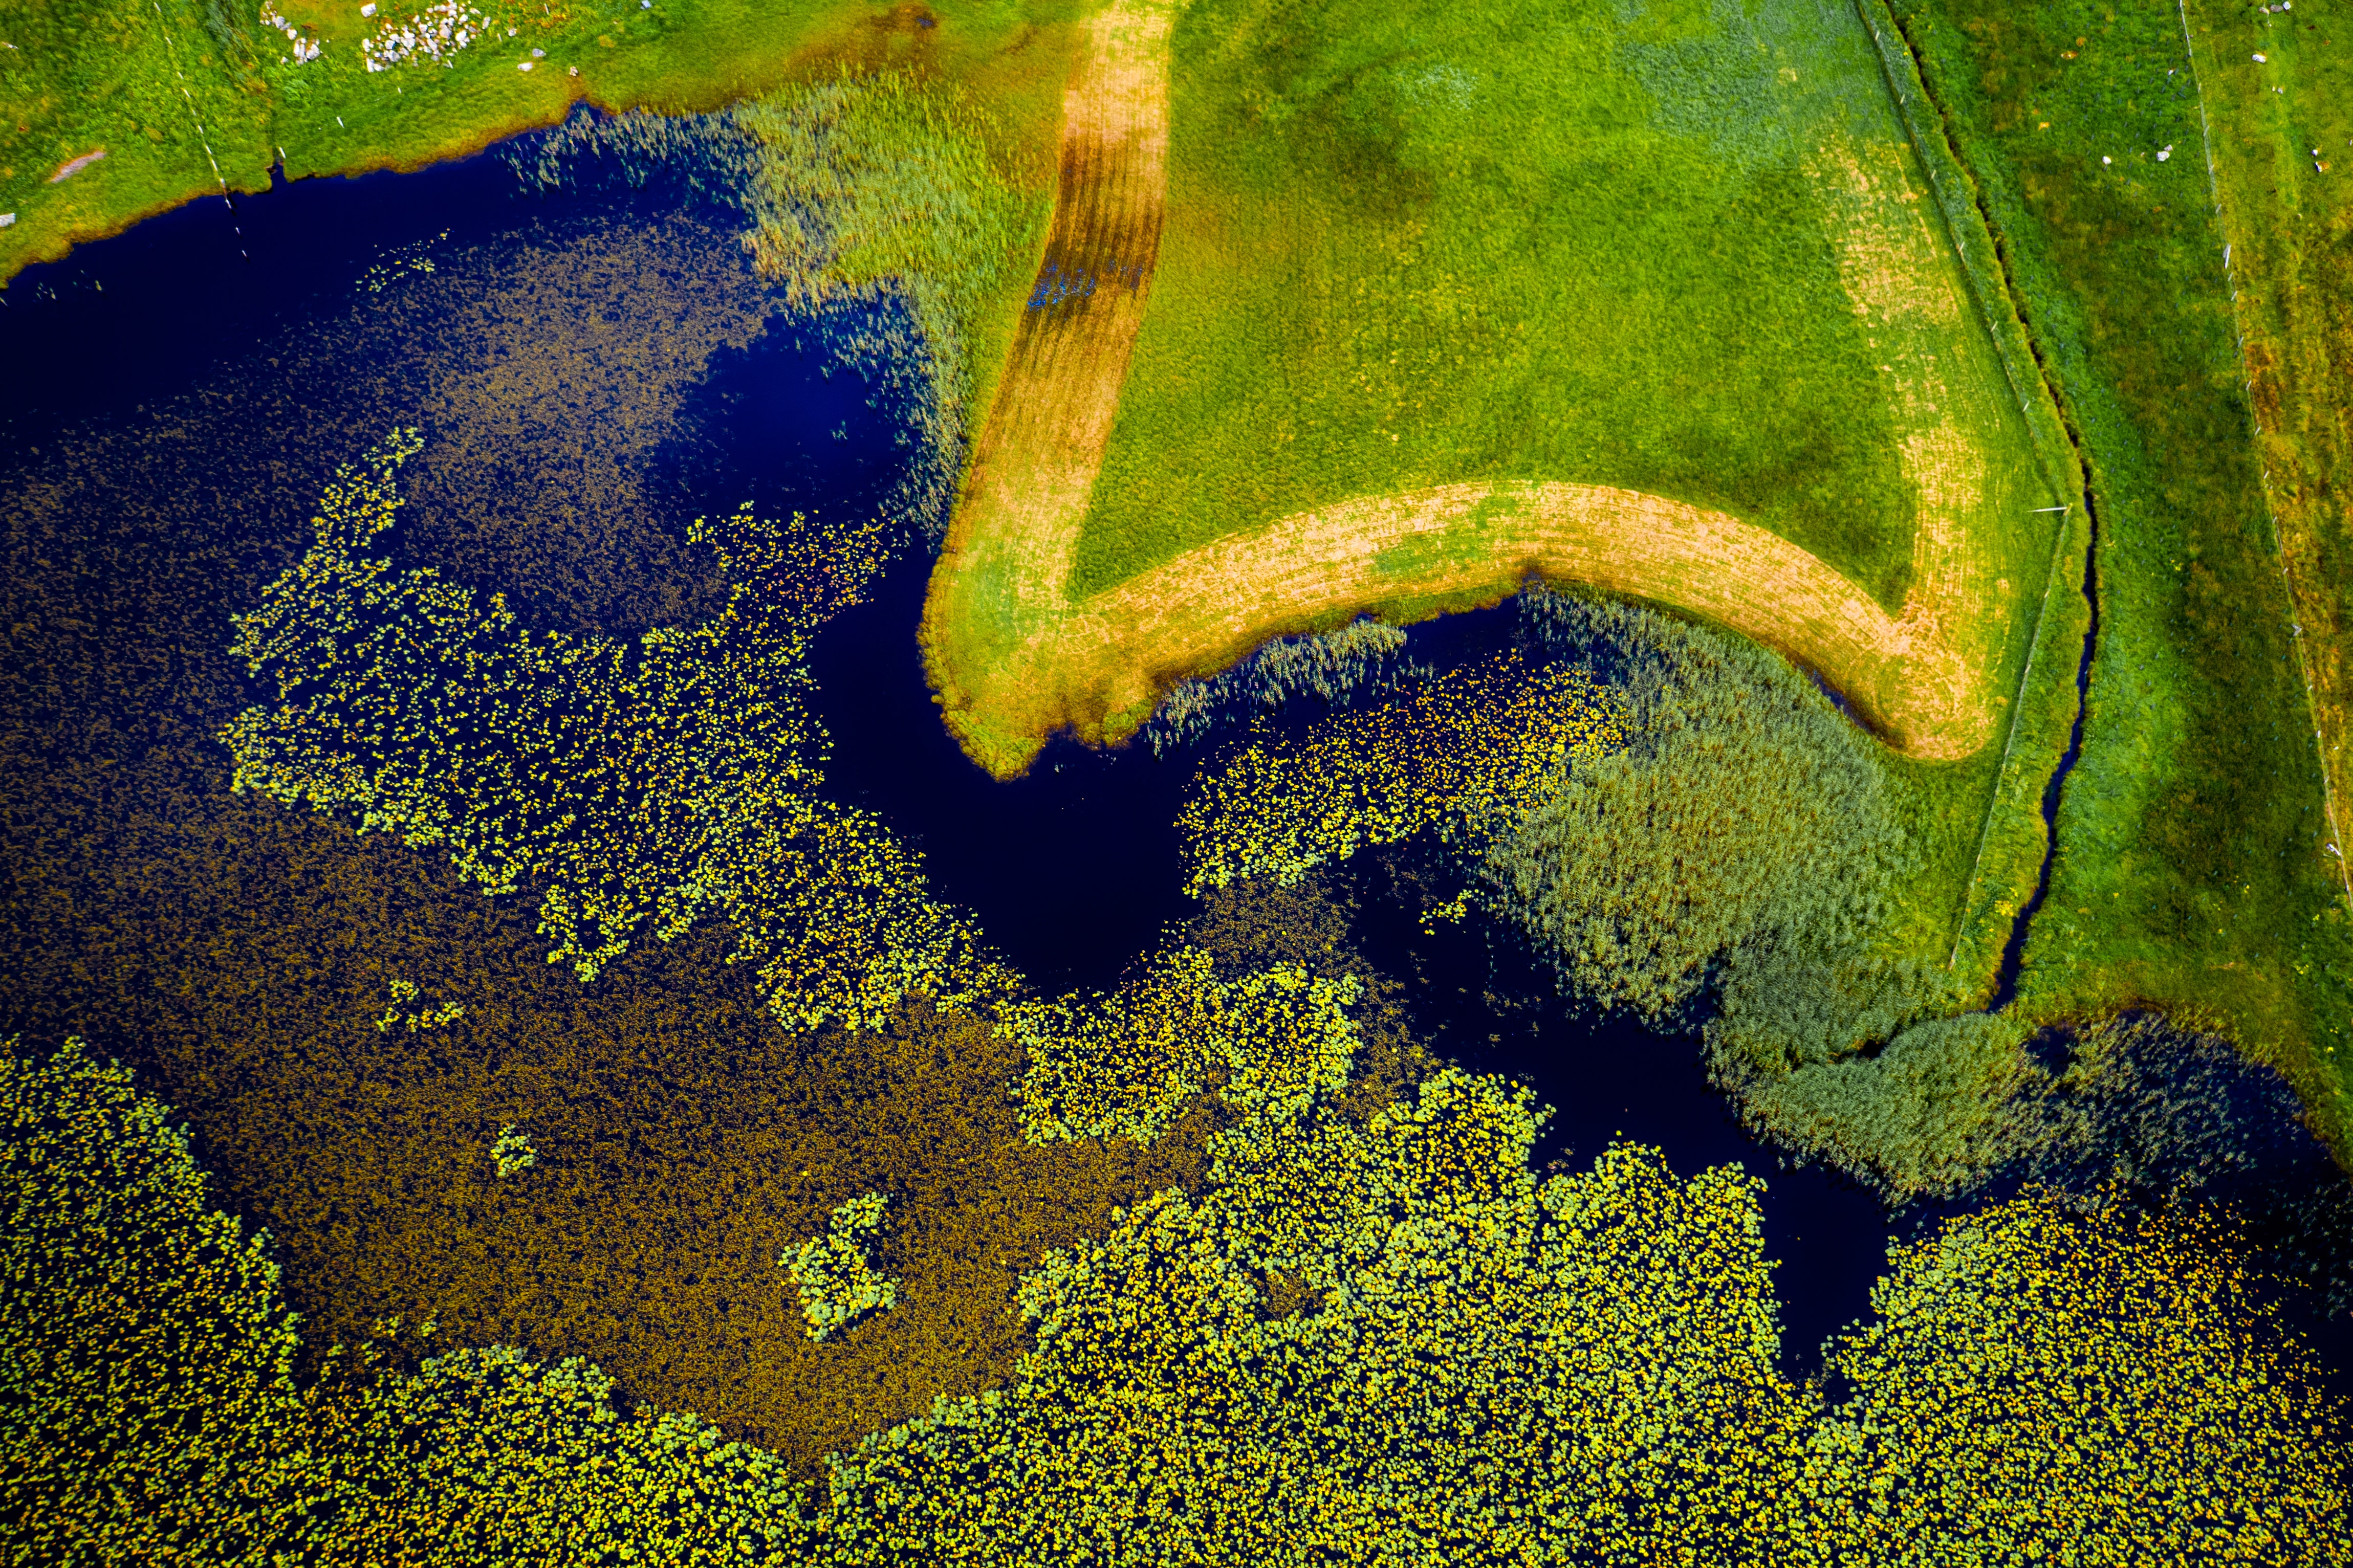 closeup photography of green moss on body of water